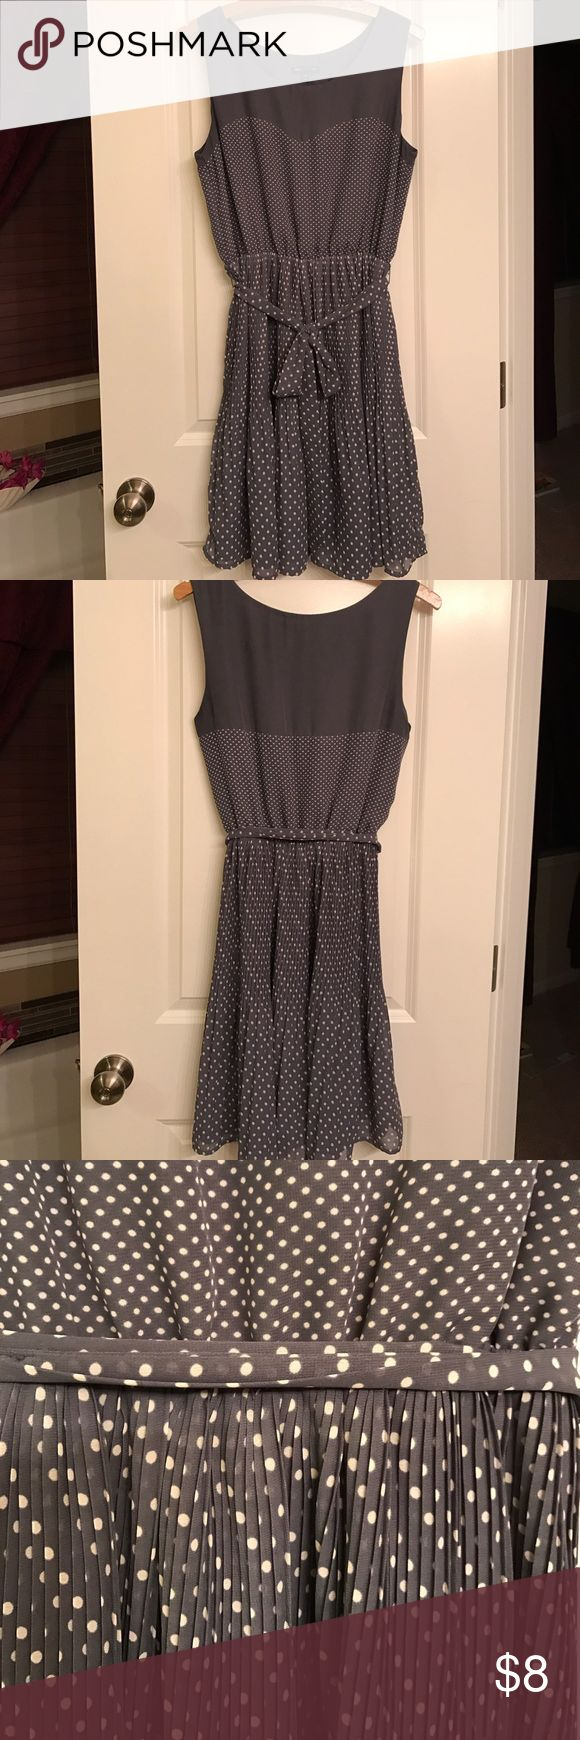 Gap Dress Pleated polka dot chiffon. The color is an off gray with a hint of blue💝💕 GAP Dresses Midi